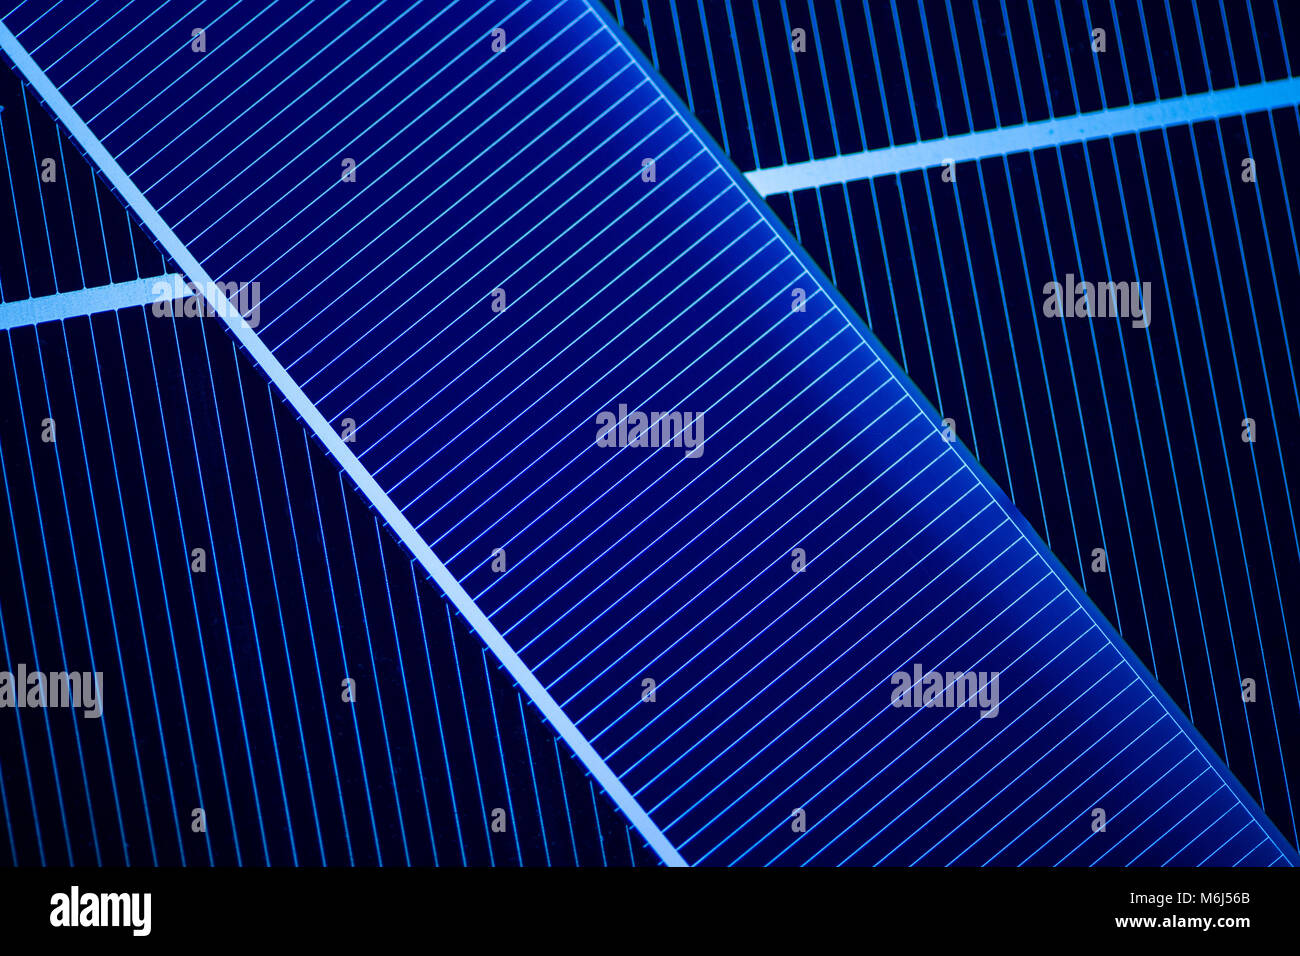 Research and production of solar cells - Stock Image